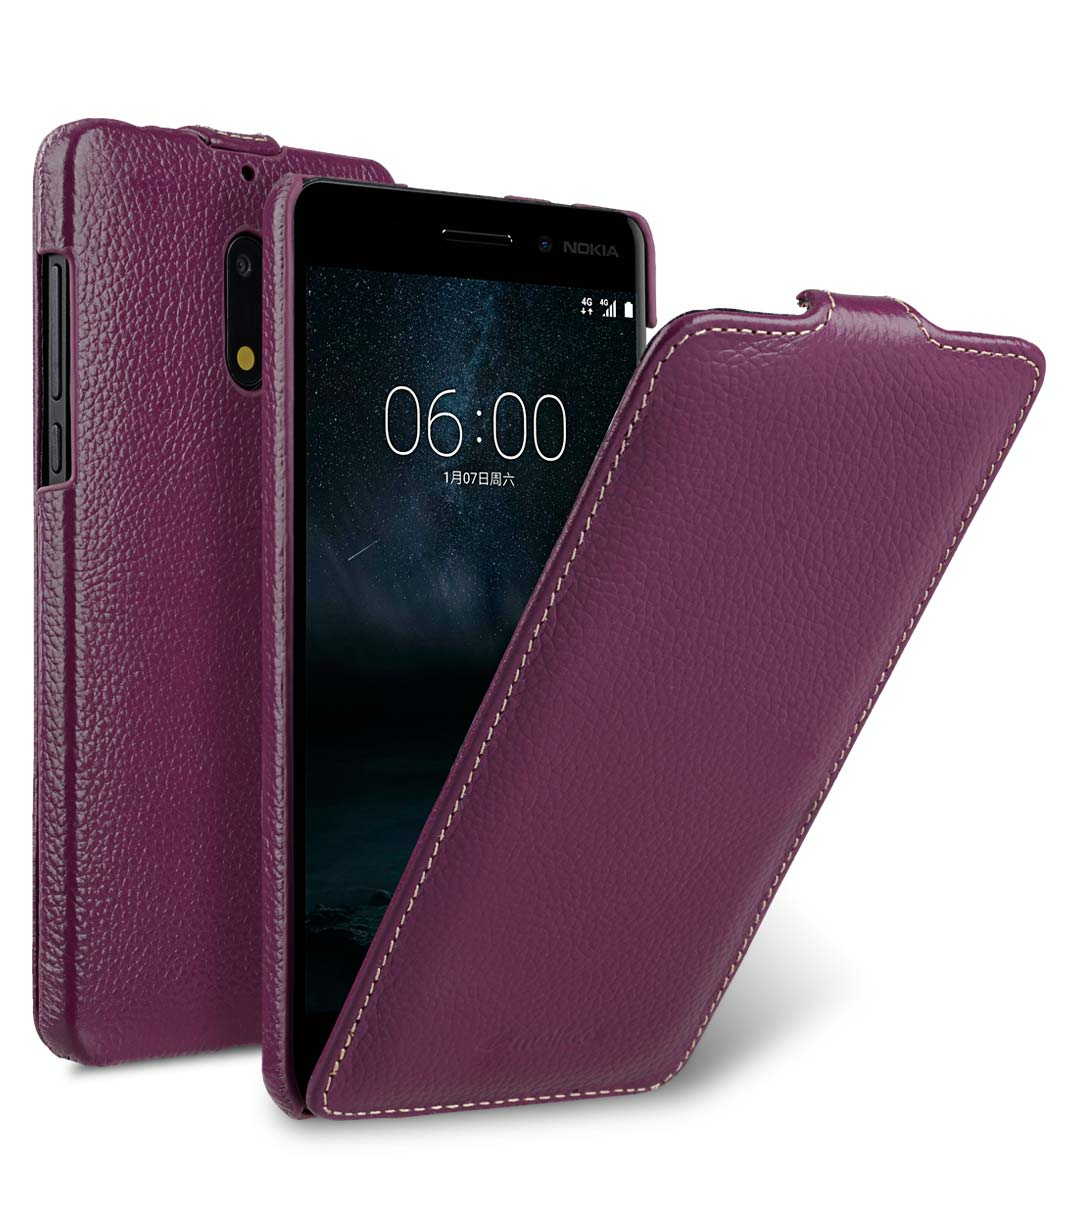 Premium Leather Case for Nokia 6 - Jacka Type (Purple LC)